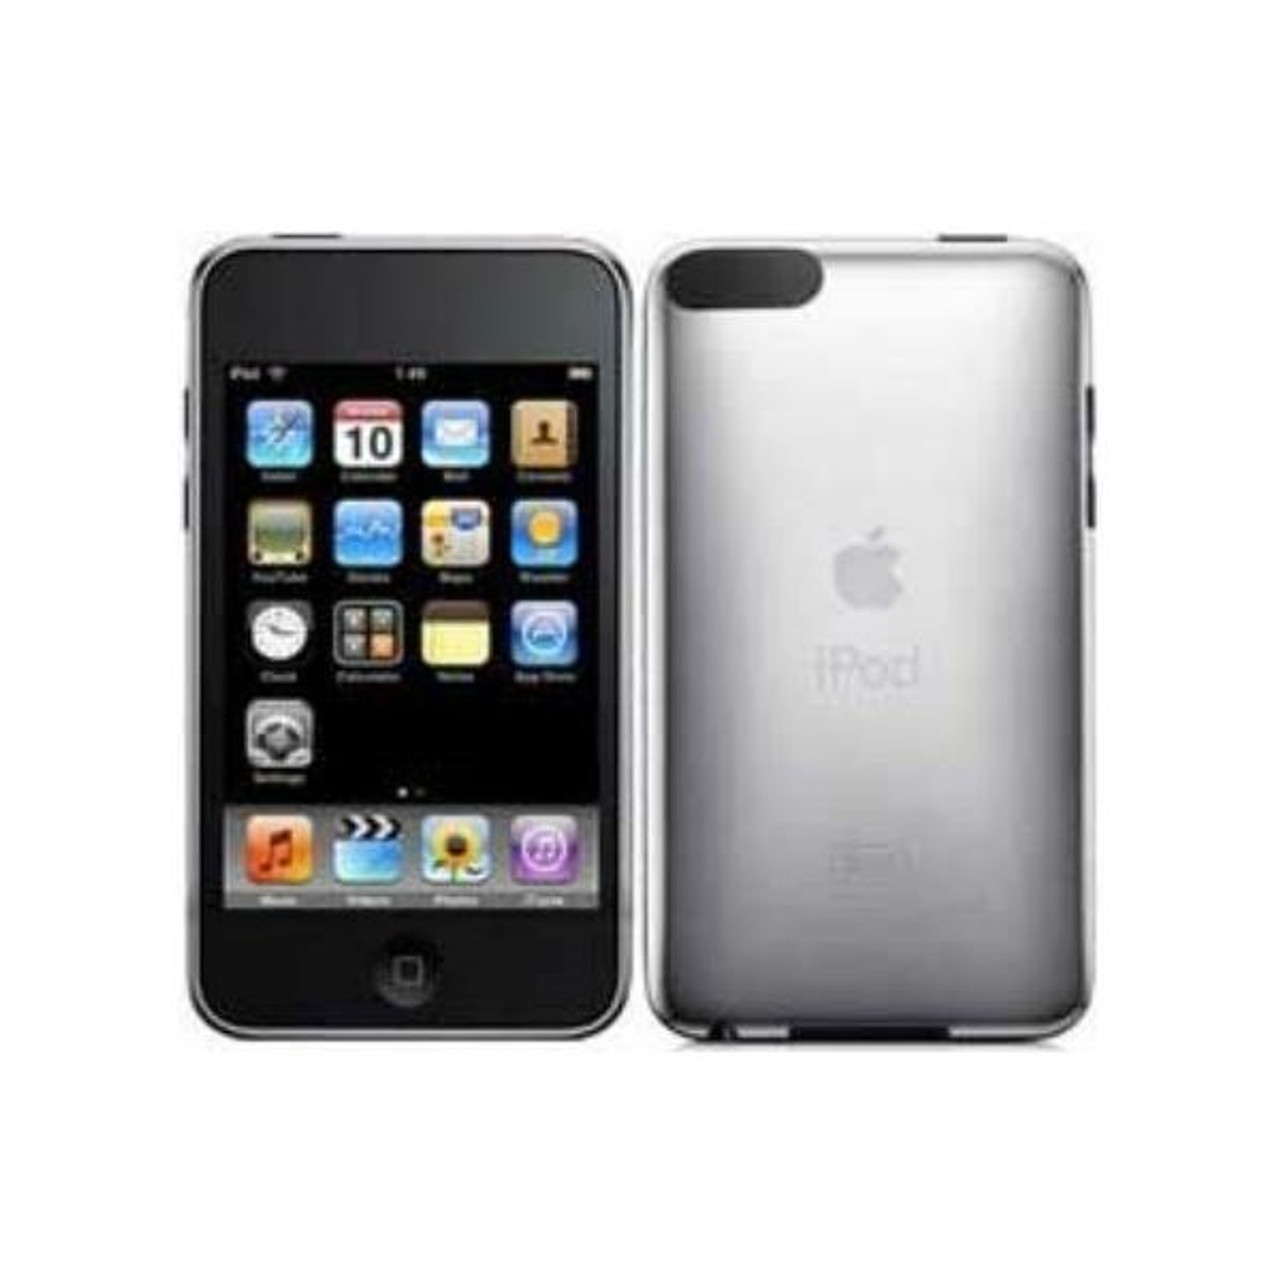 8 GB Apple iPod touch 2nd Generation Black